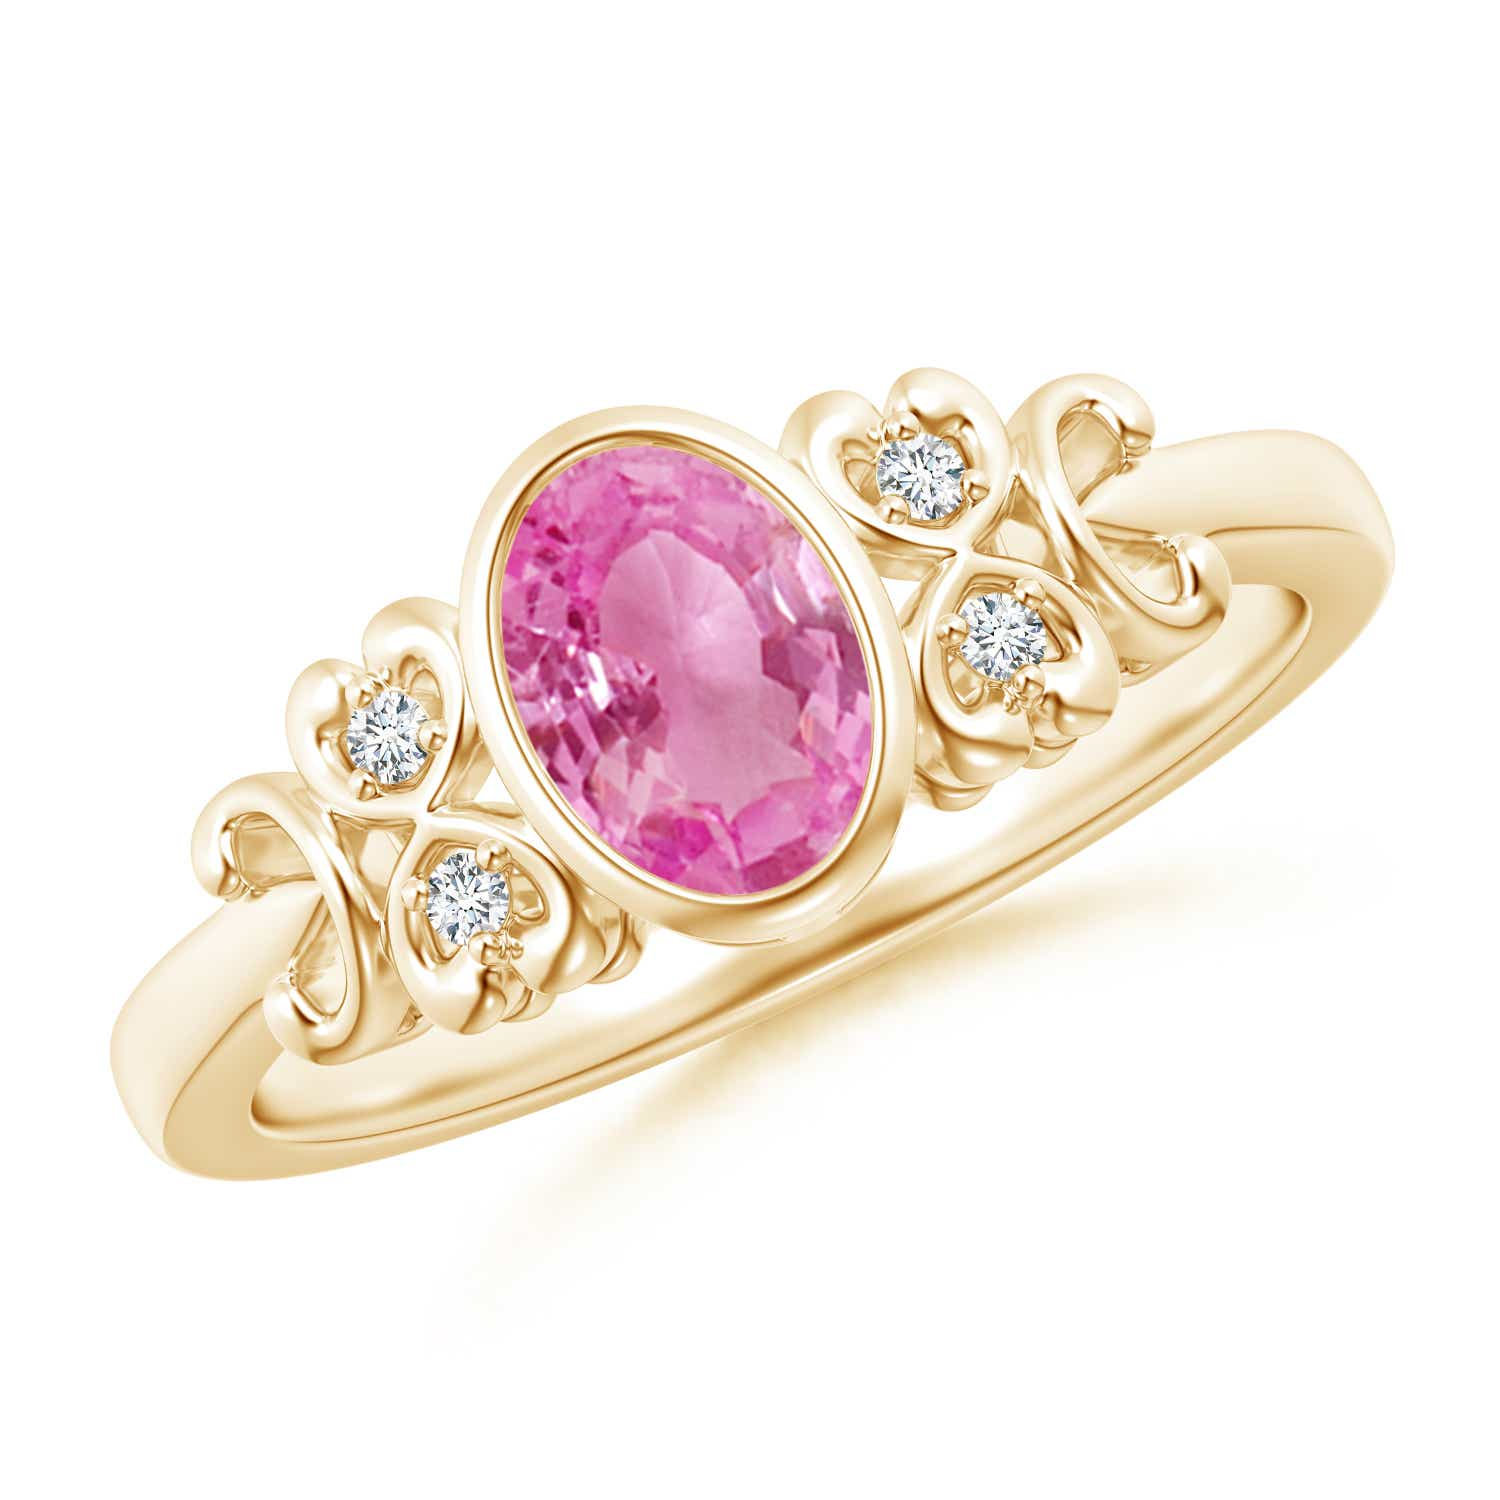 Vintage Style Natural Pink Sapphire Diamond Ring in 14k Gold ...